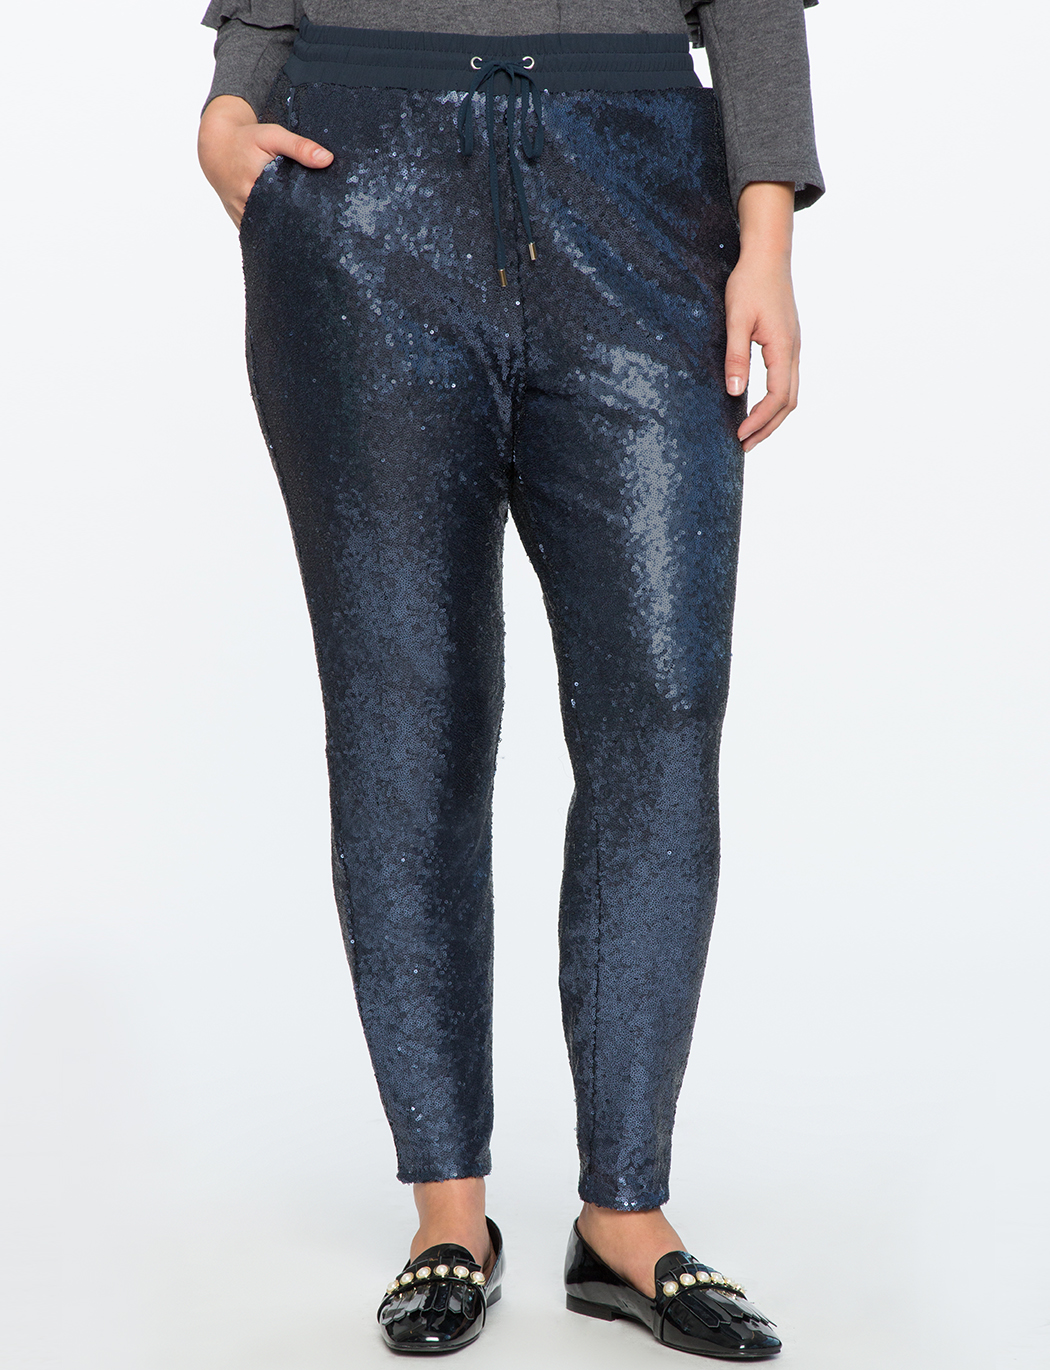 Sequin Pull On Pant